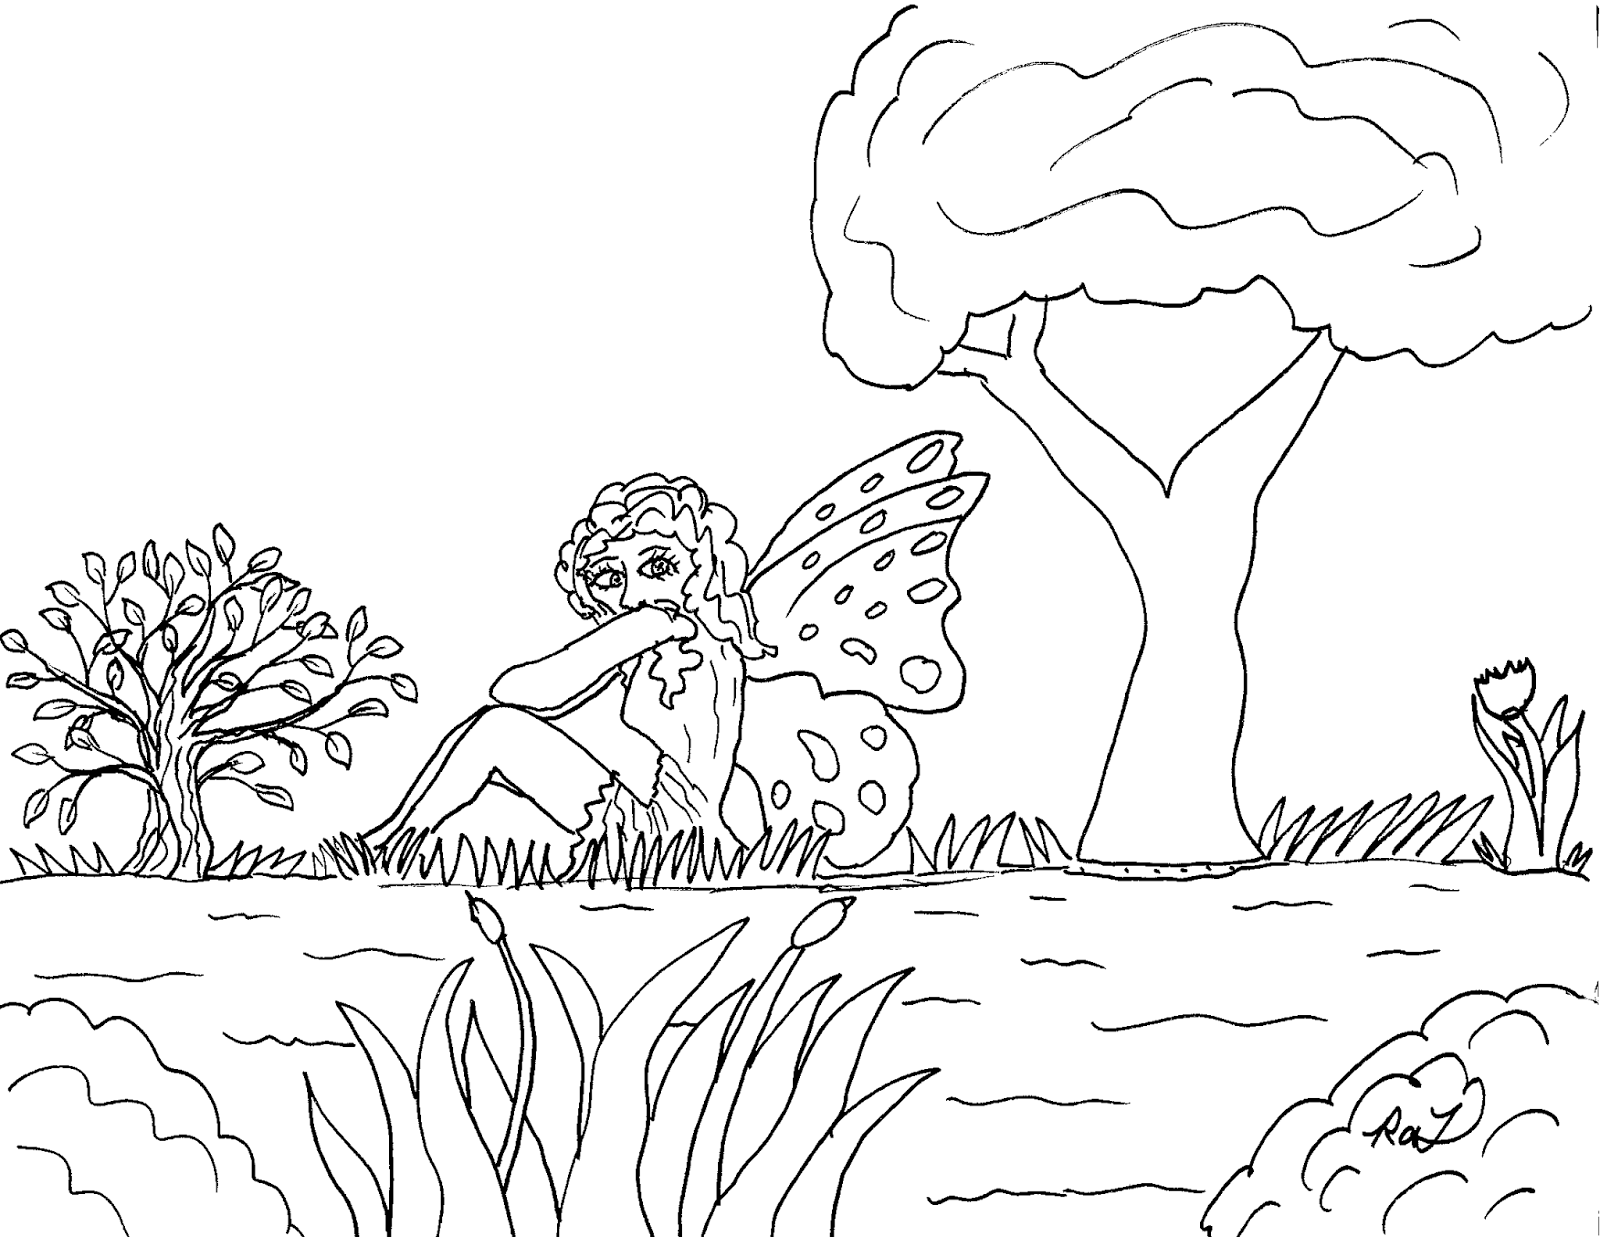 Robin\'s Great Coloring Pages: Butterfly Fairies